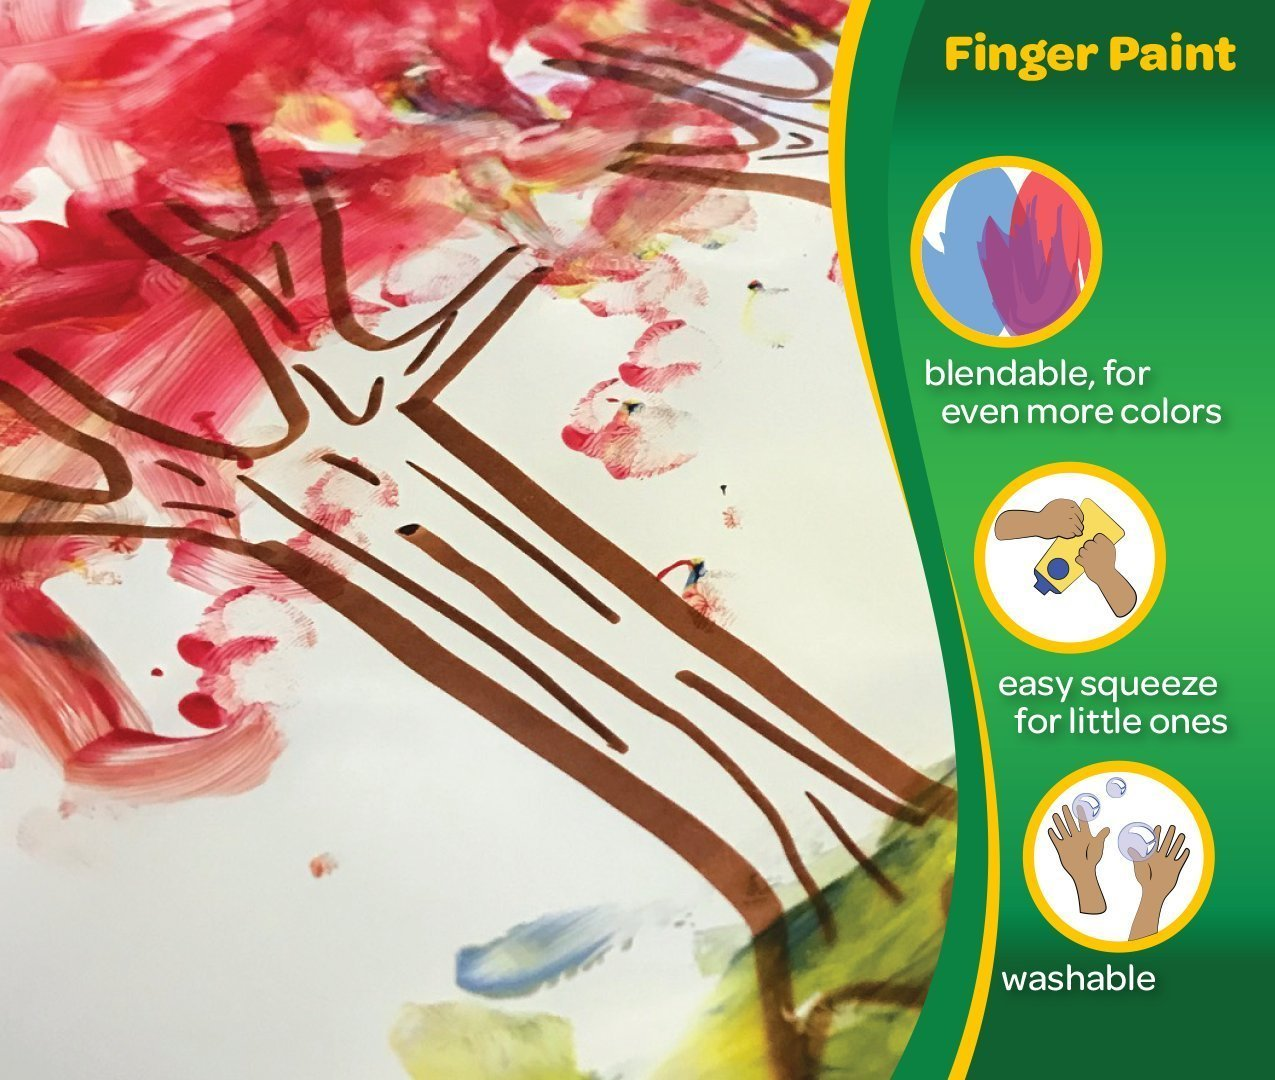 Crayola Washable FingerPaints, 6 Count 8 oz. by Crayola (Image #4)